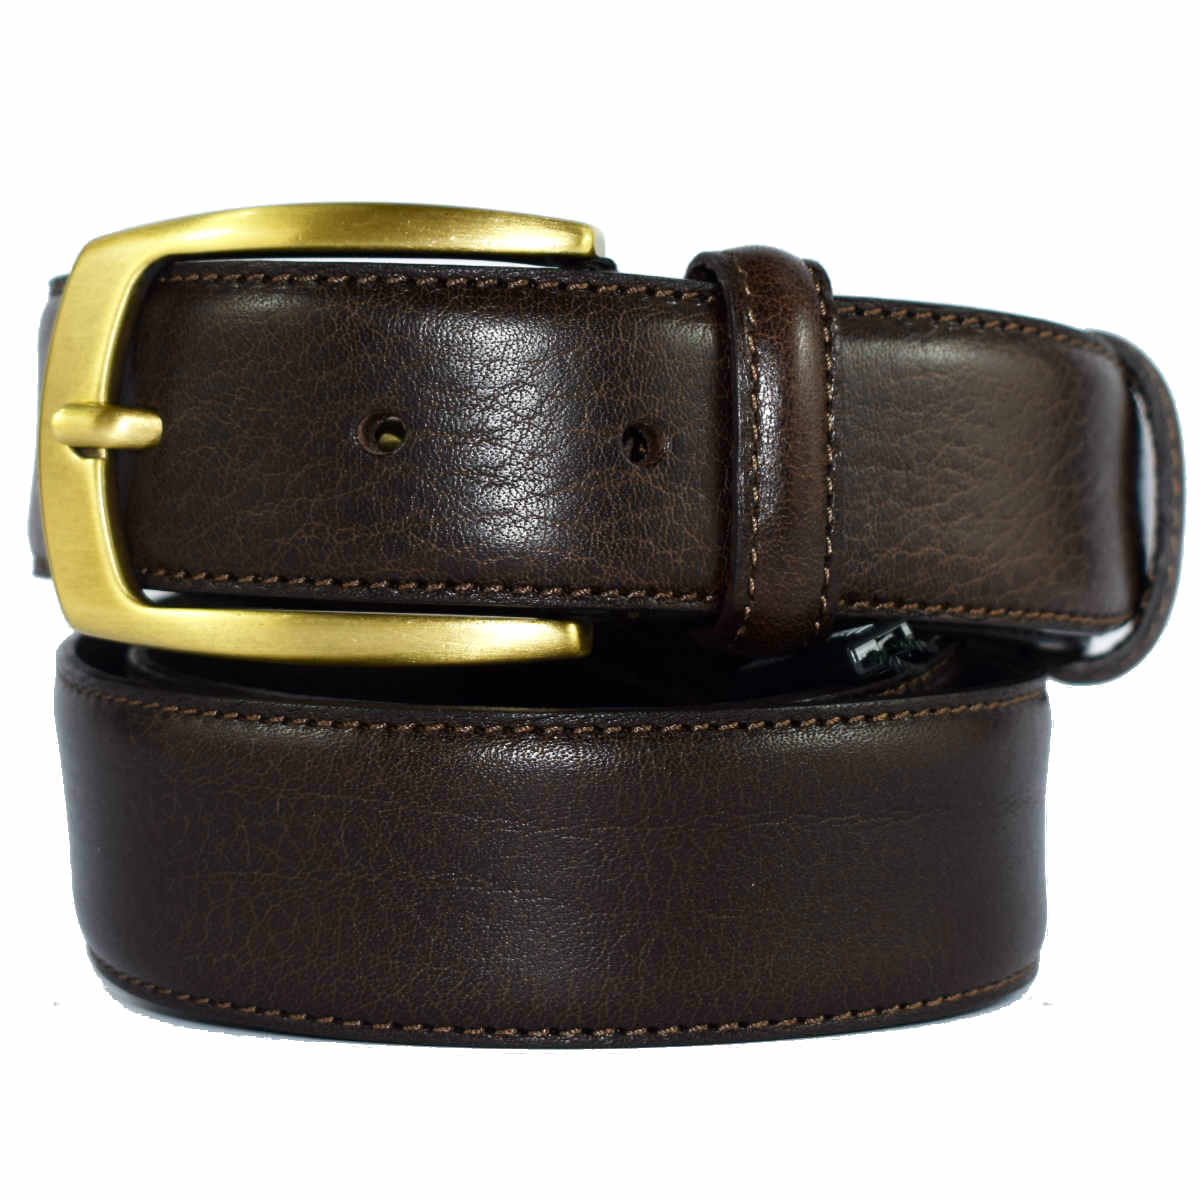 6266835 BRASS BUCKLE BELT by Bottega Fiorentina